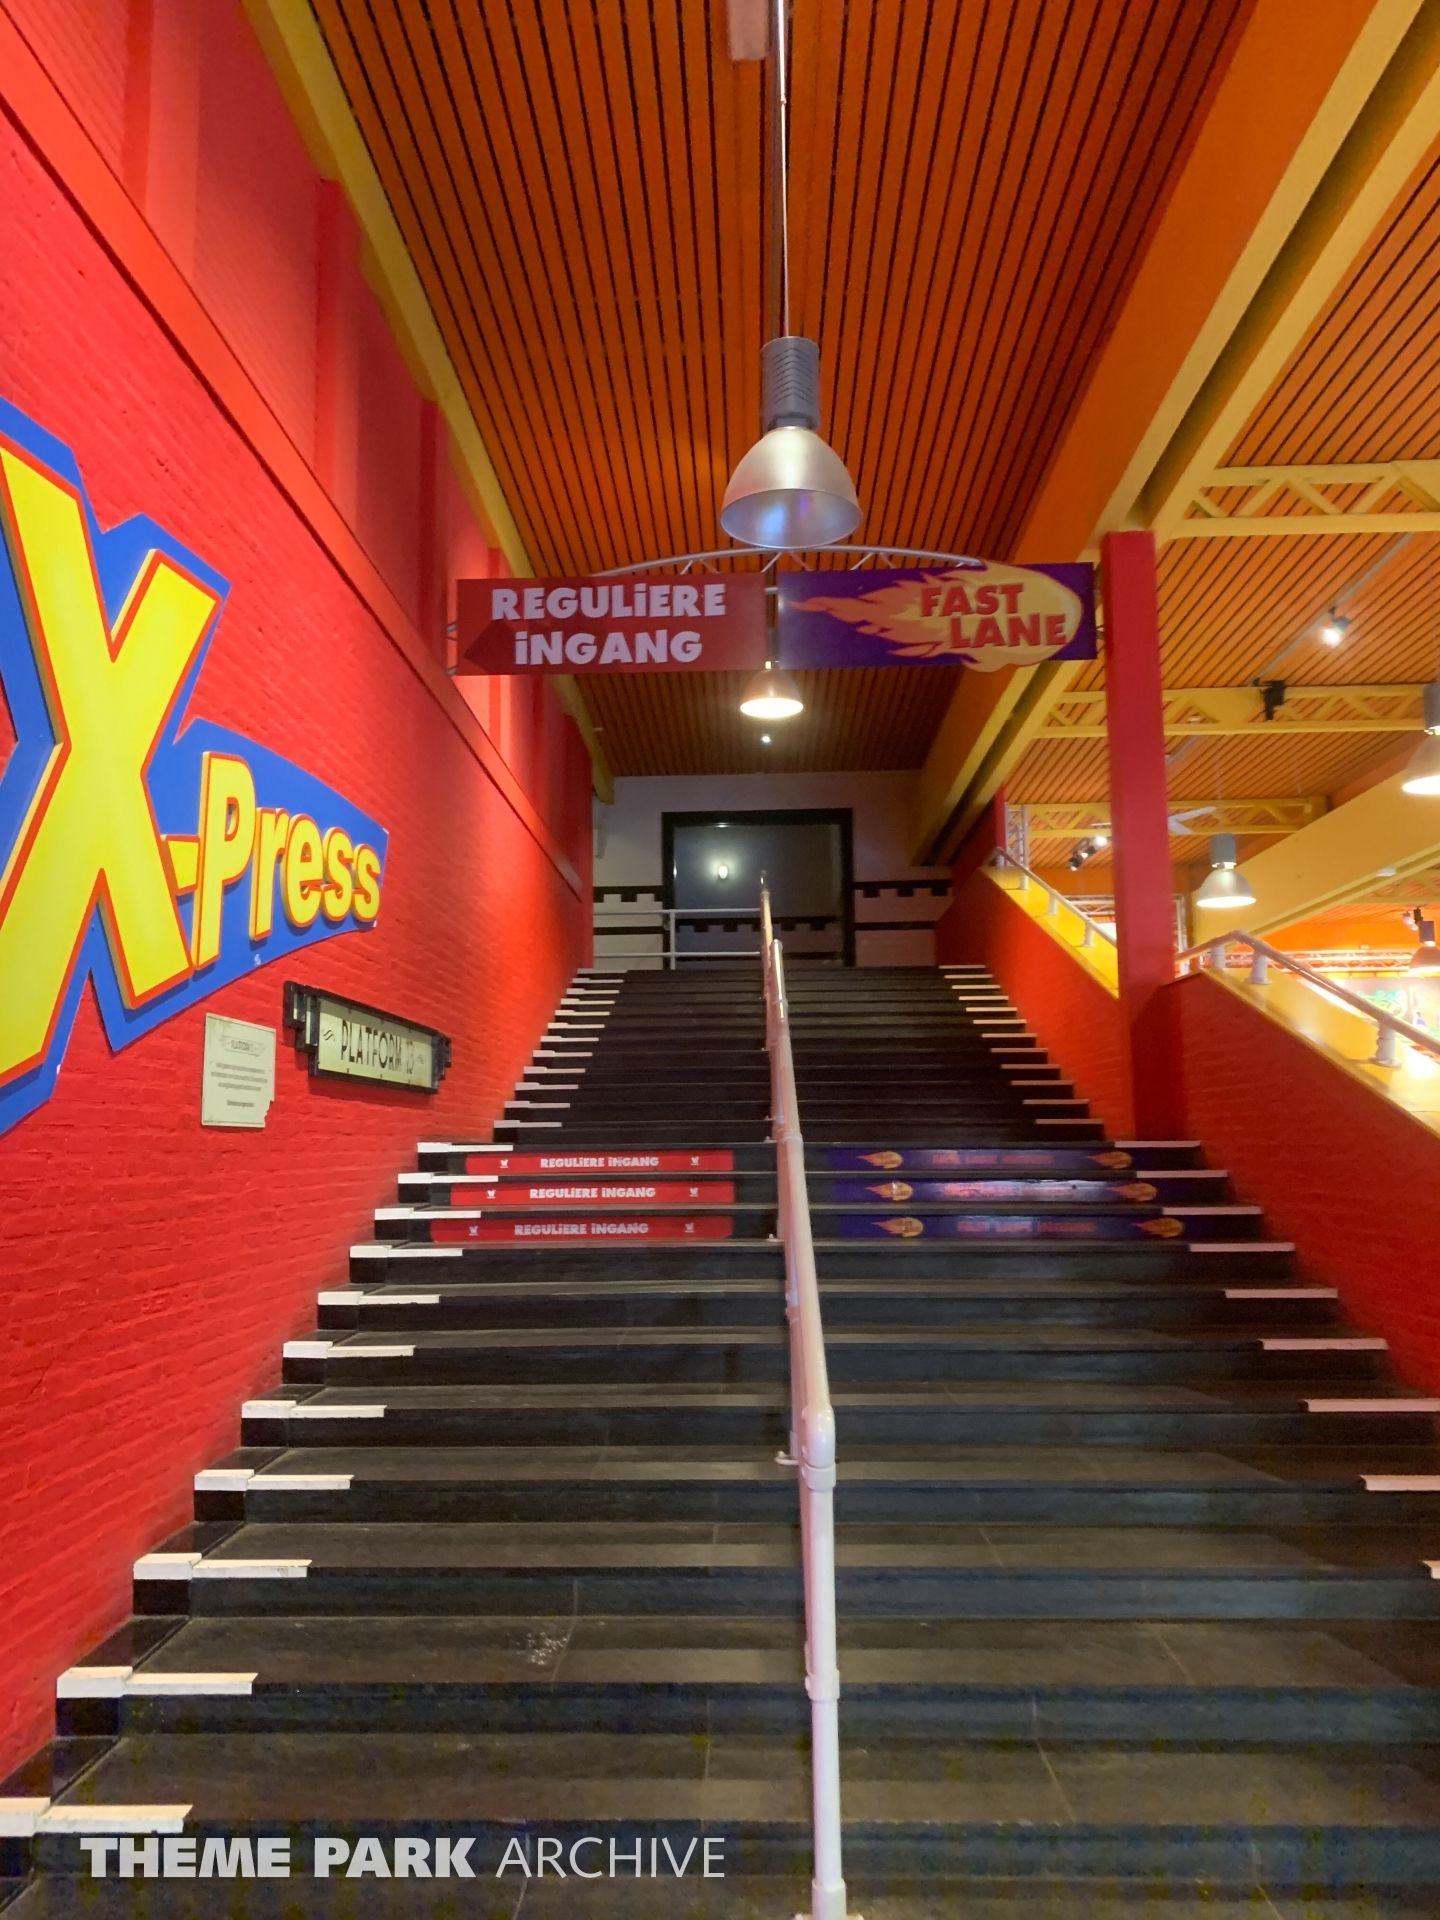 Xpress Platform 13 at Walibi Holland